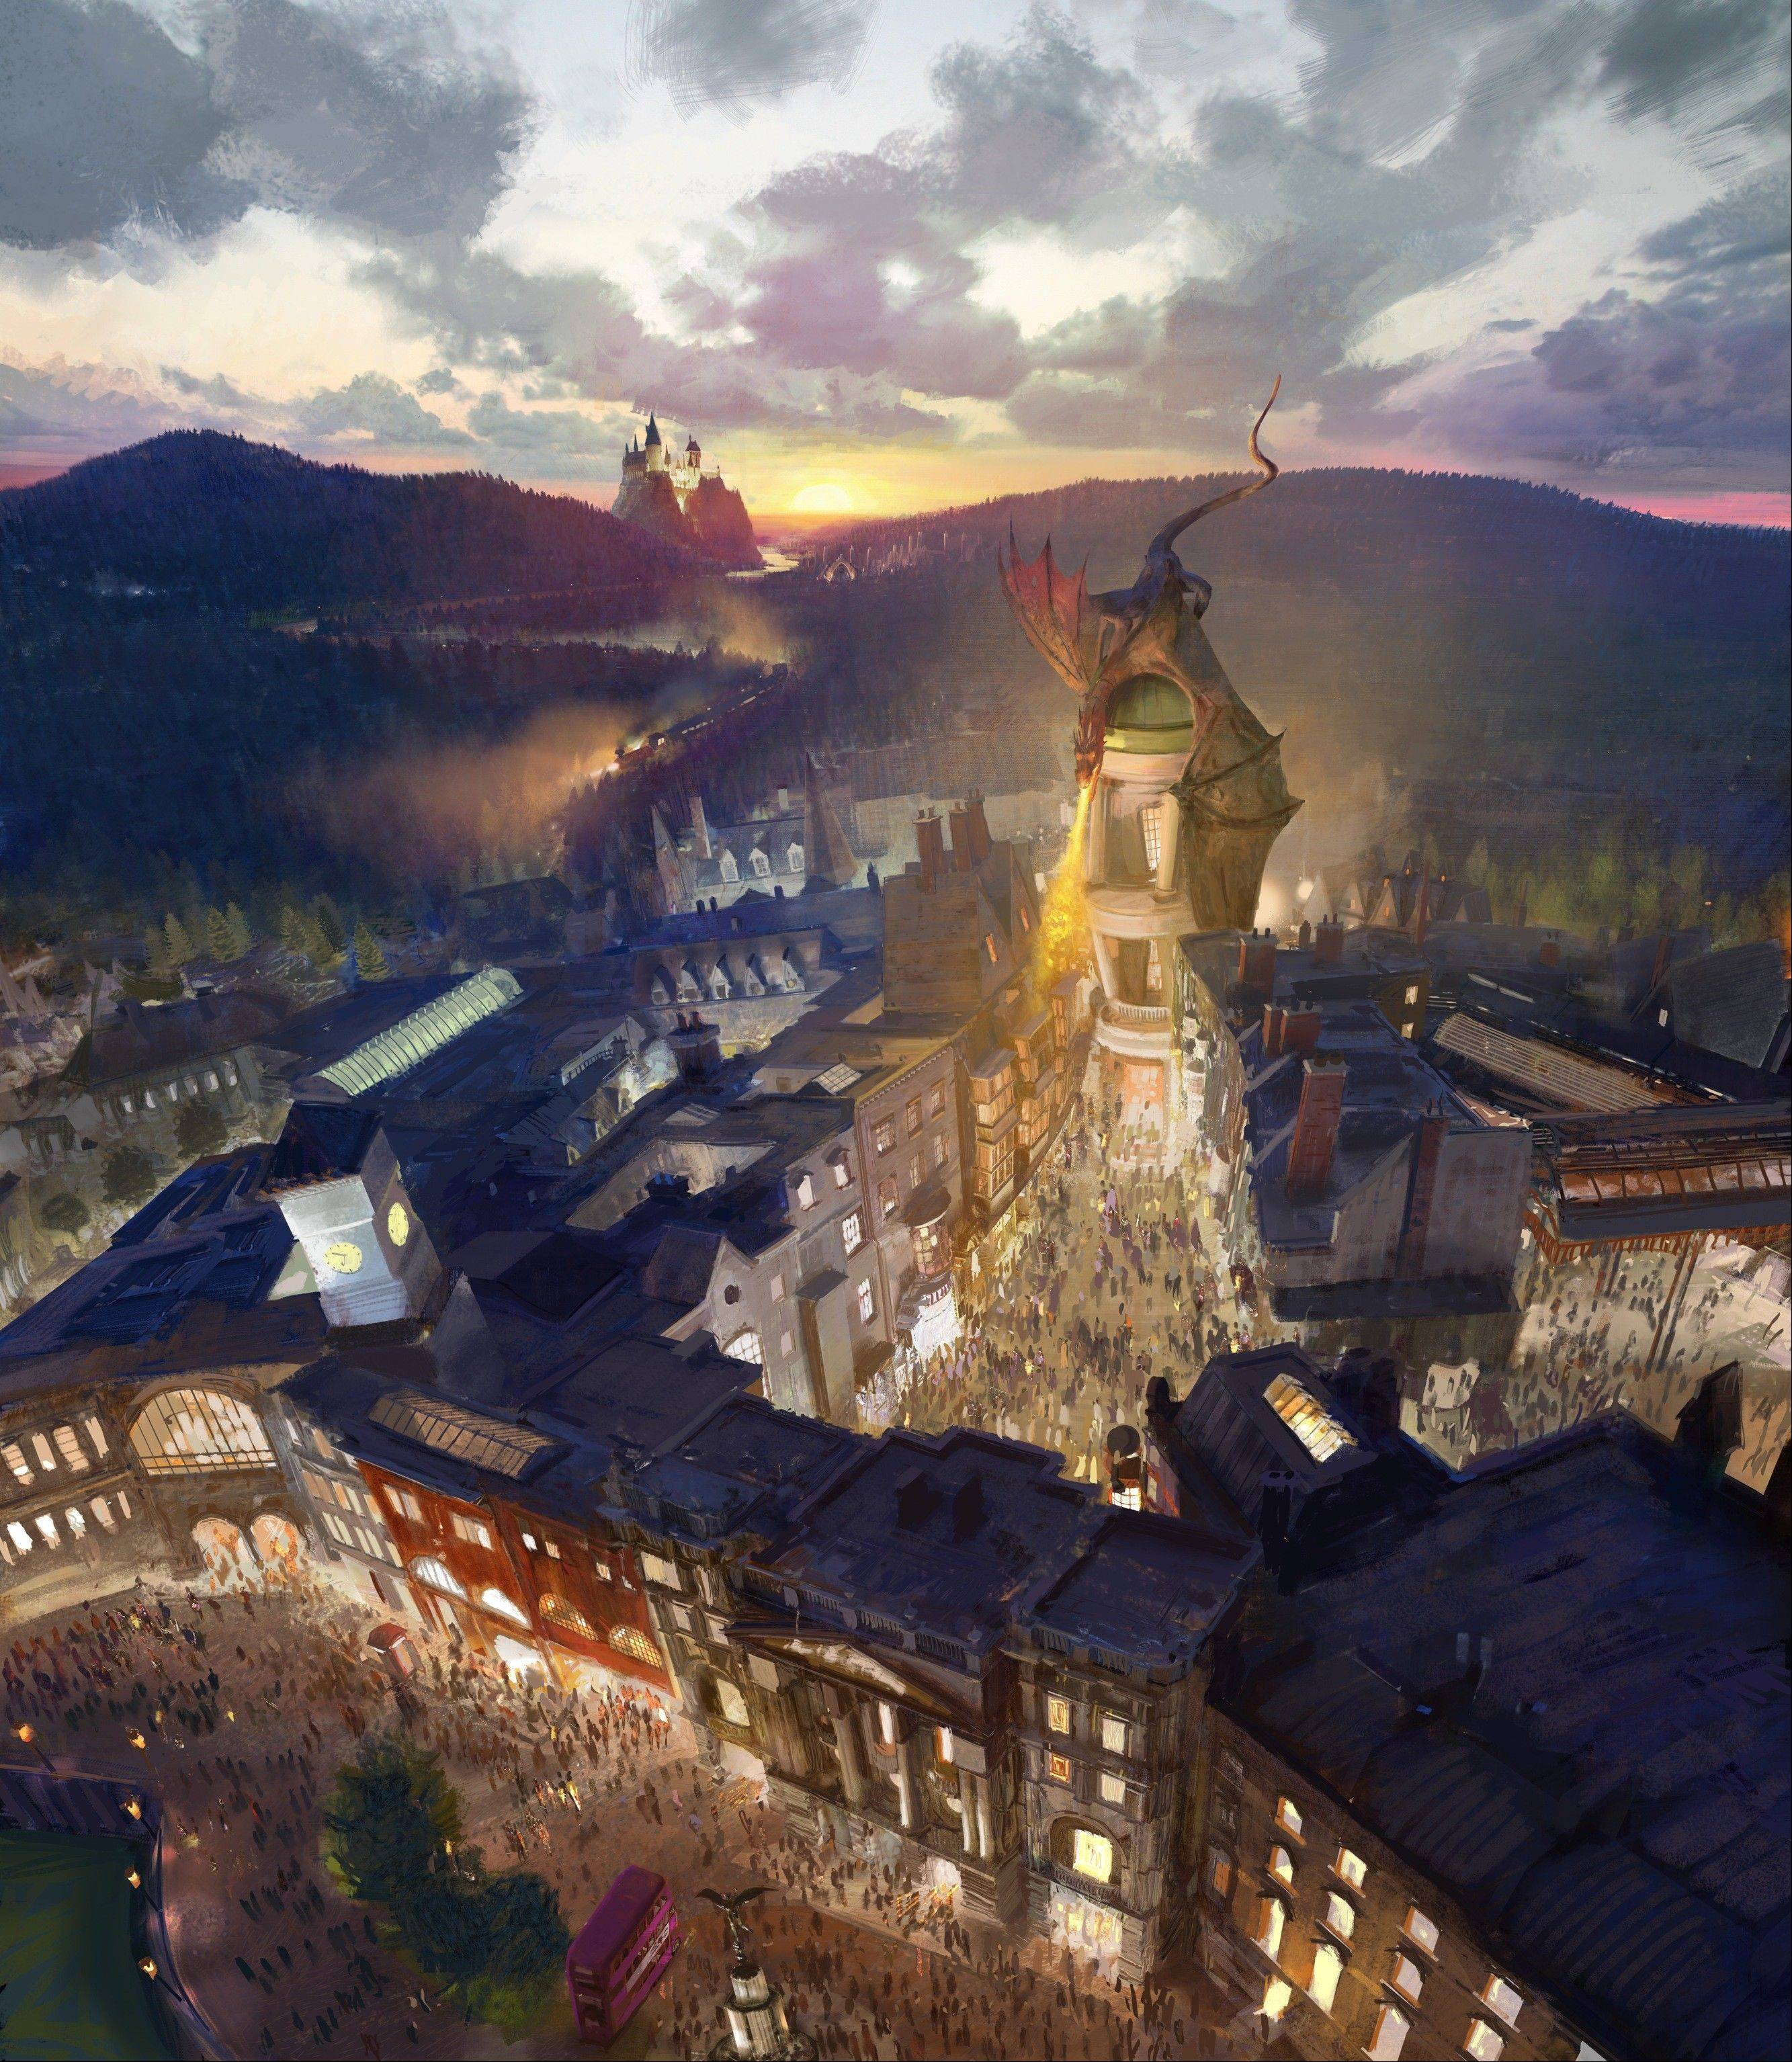 This artist rendering provided by NBC Universal shows the new Harry Potter-themed area of the Universal theme park in Orlando, Fla., planned for 2014, which was inspired partly by the fictional Diagon Alley from the Harry Potter books and movies. The area will be linked to the existing Wizarding World of Harry Potter attraction by a train called the Hogwarts Express.